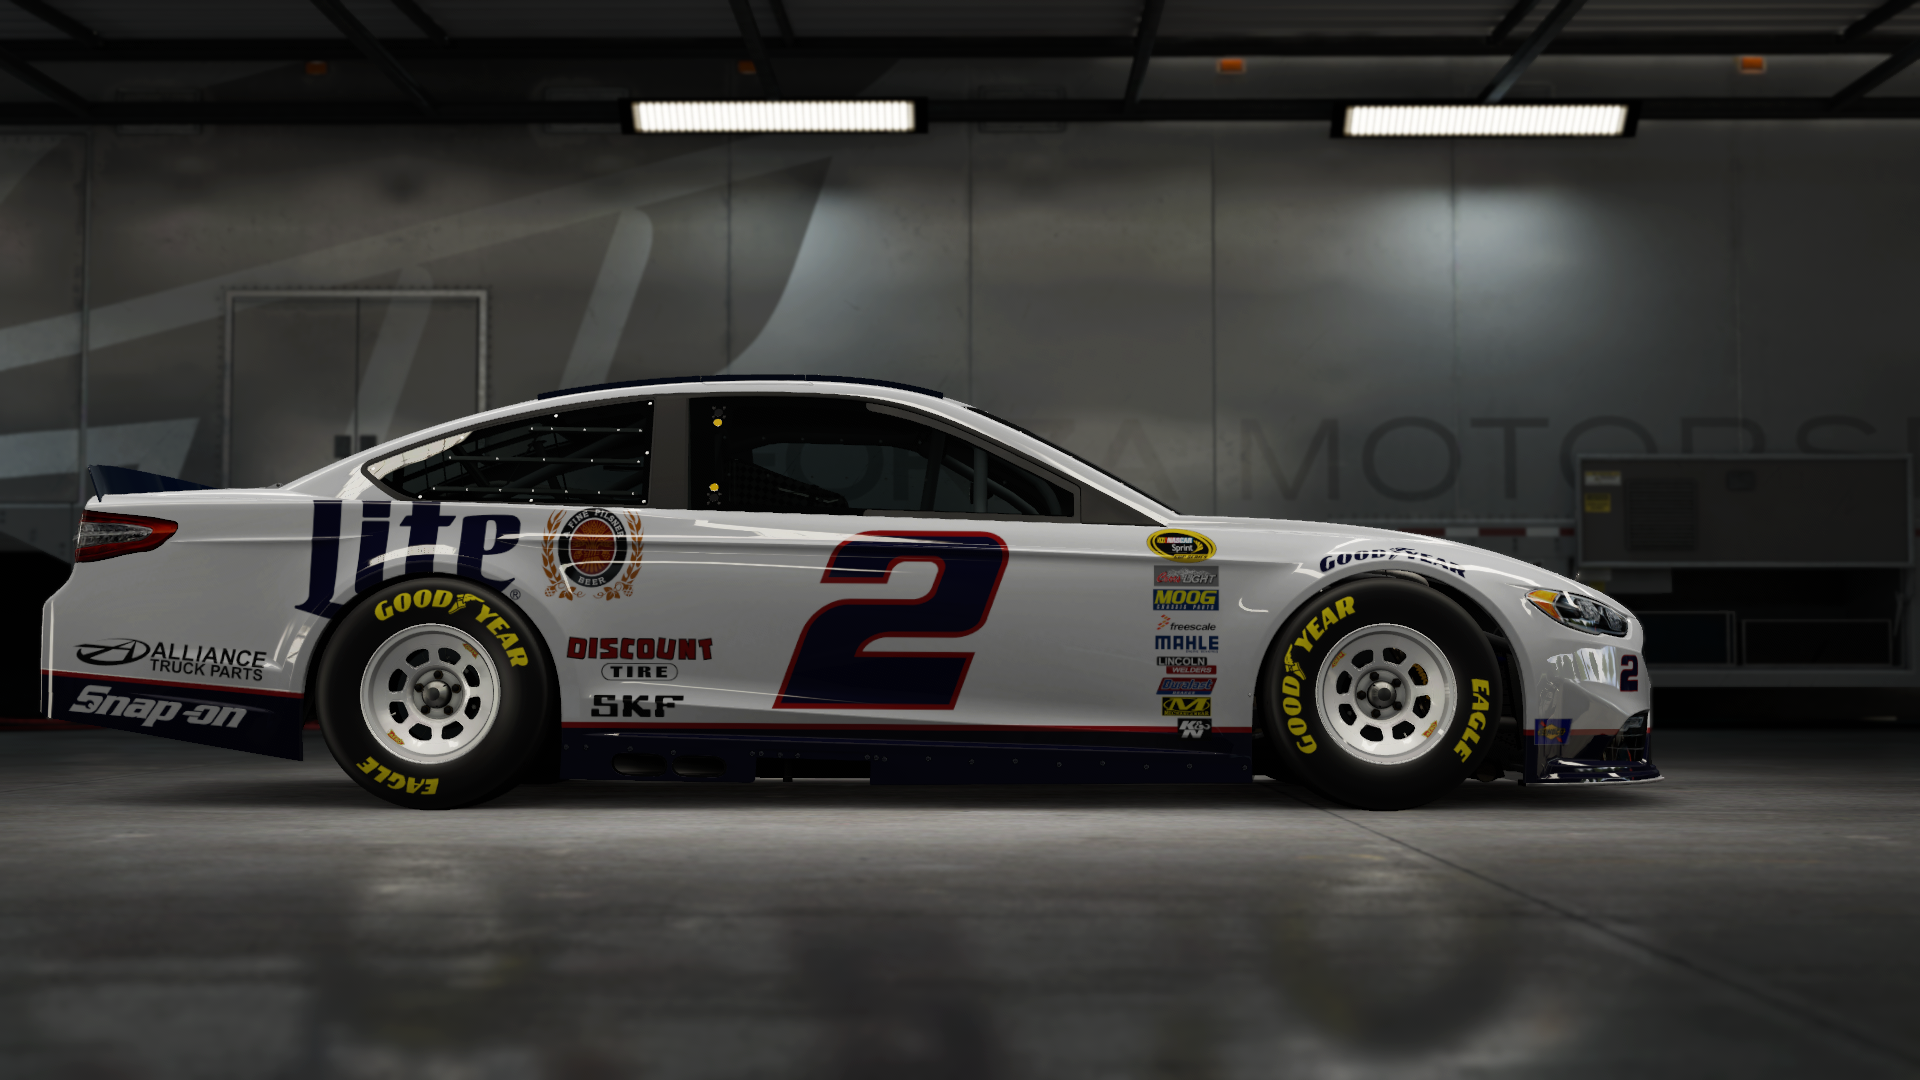 On the #2 Team Penske 'Brad K.' Ford Fusion, Made by SweedishThunder